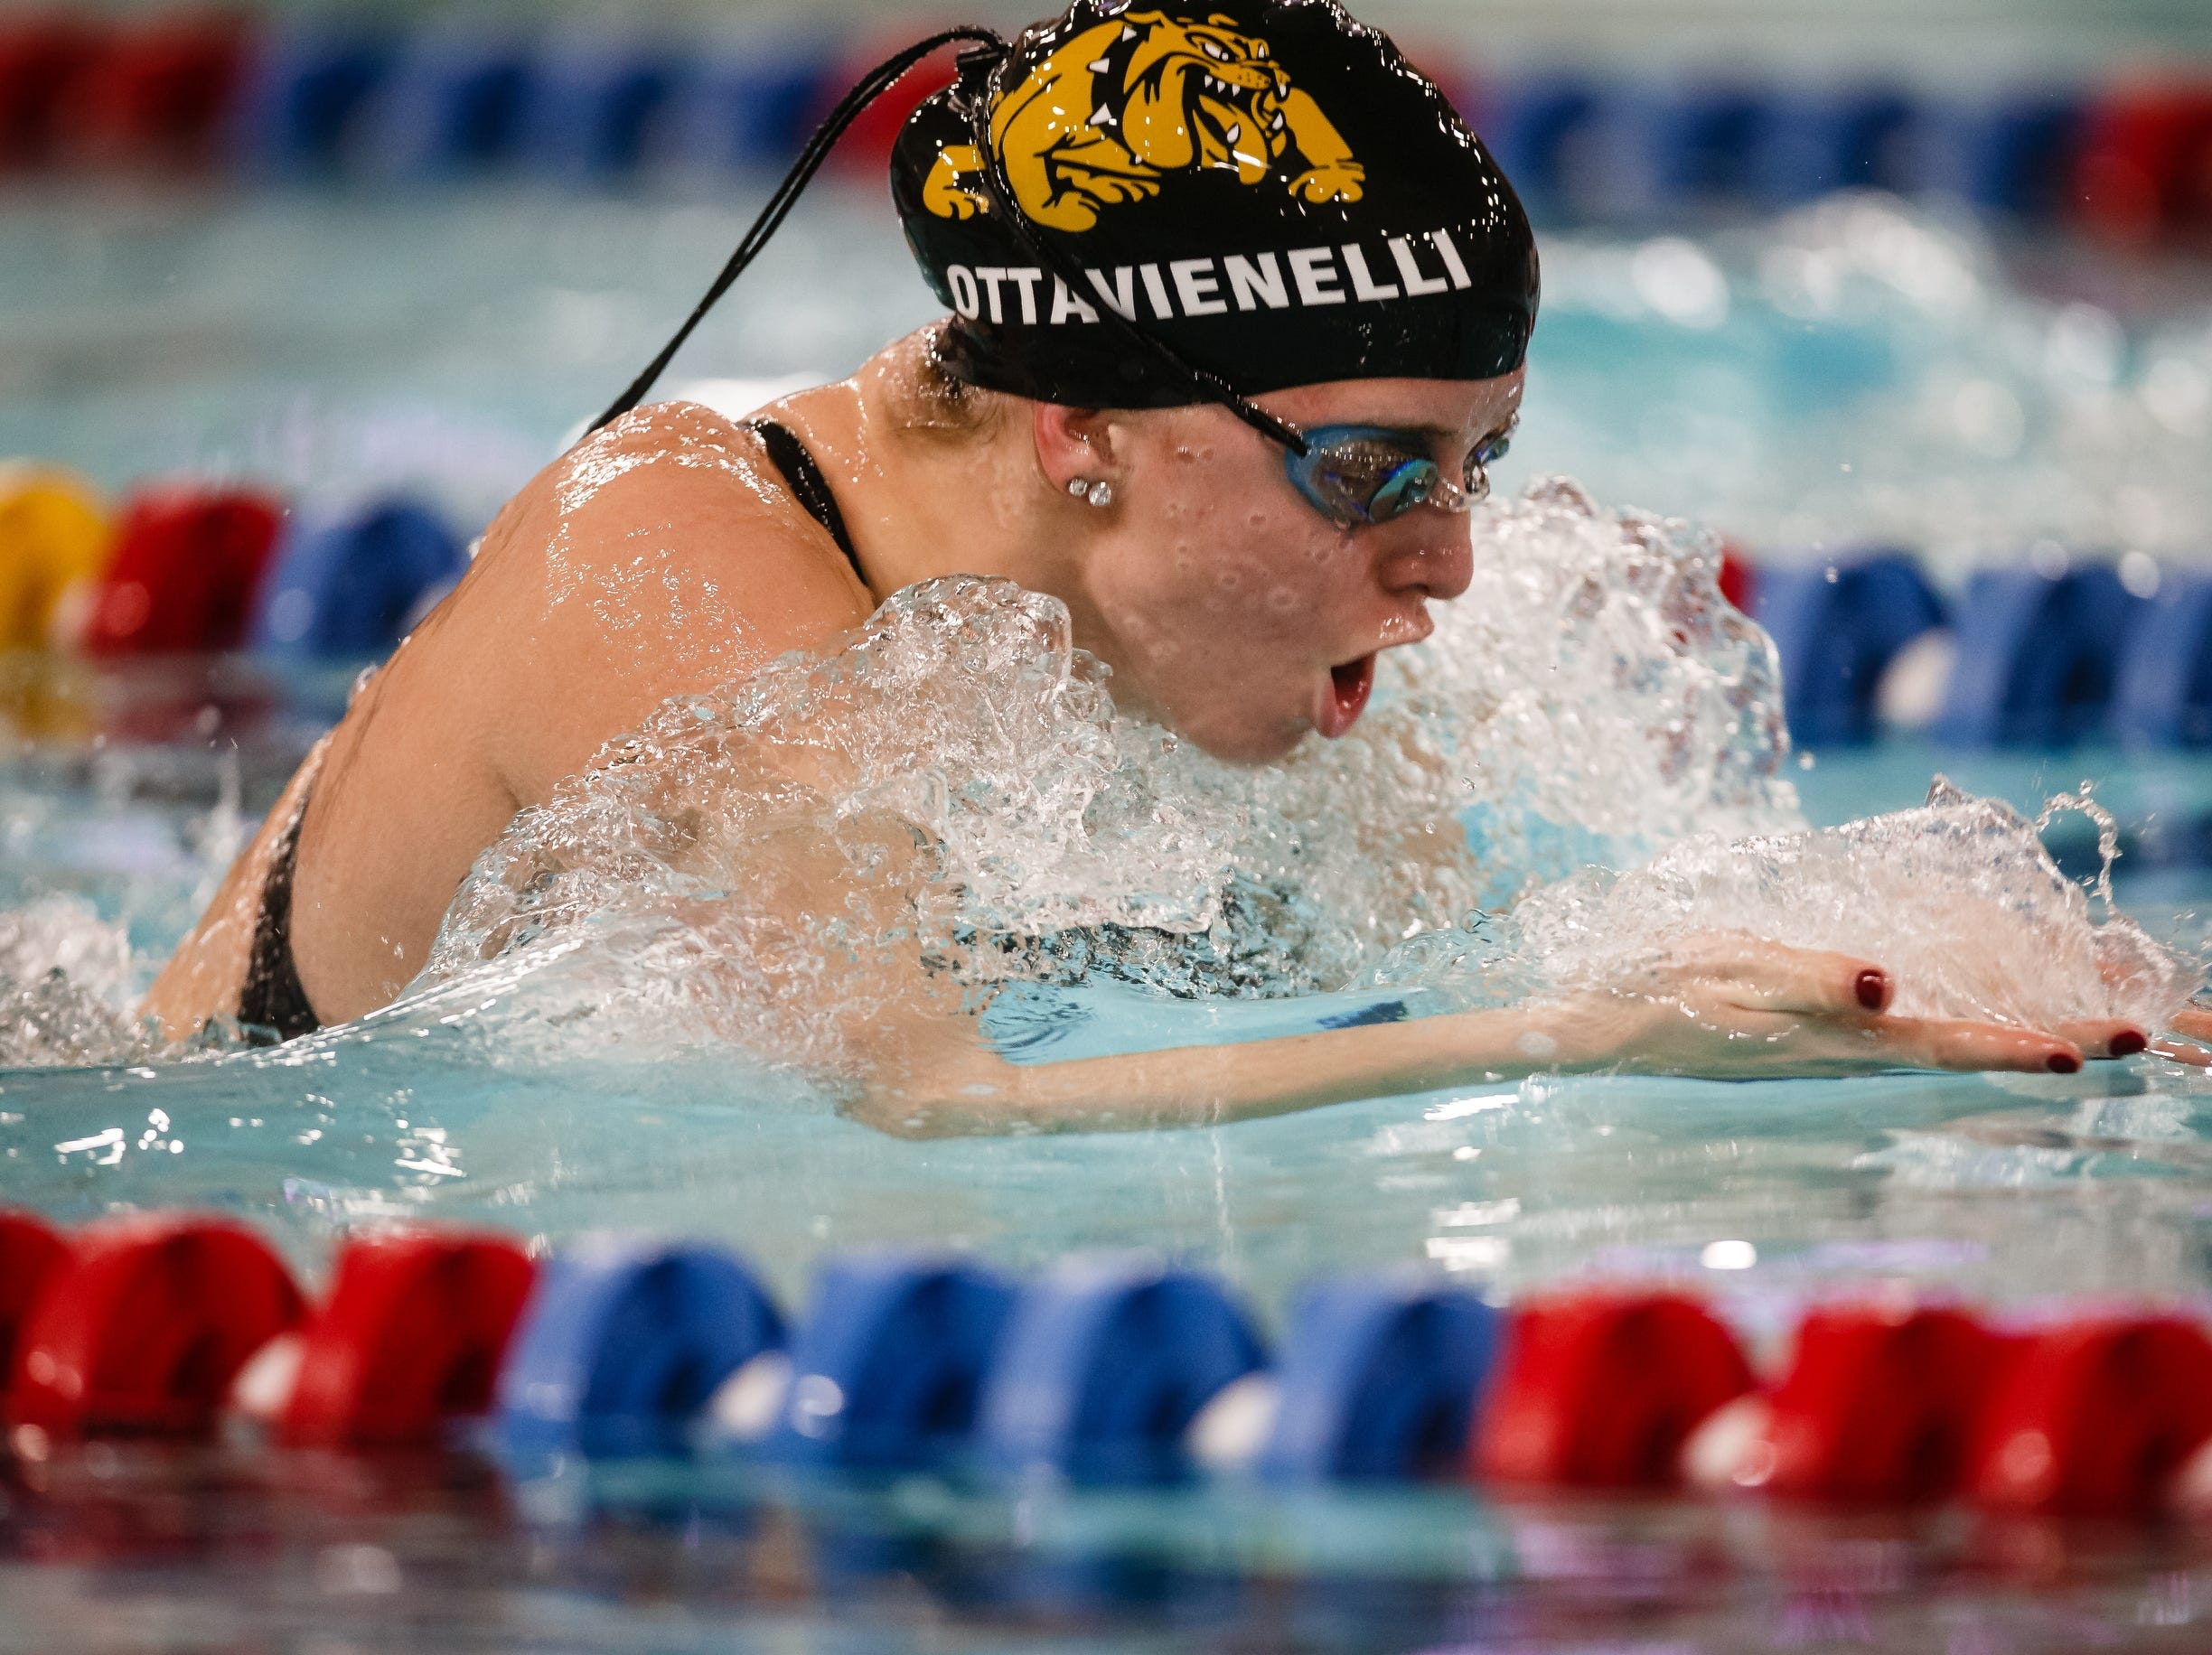 Bettendorf's Arianna Ottavianelli competes in the 100 yard breaststroke at the Iowa girls state swimming meet on Saturday, Nov. 3, 2018, in Marshalltown.